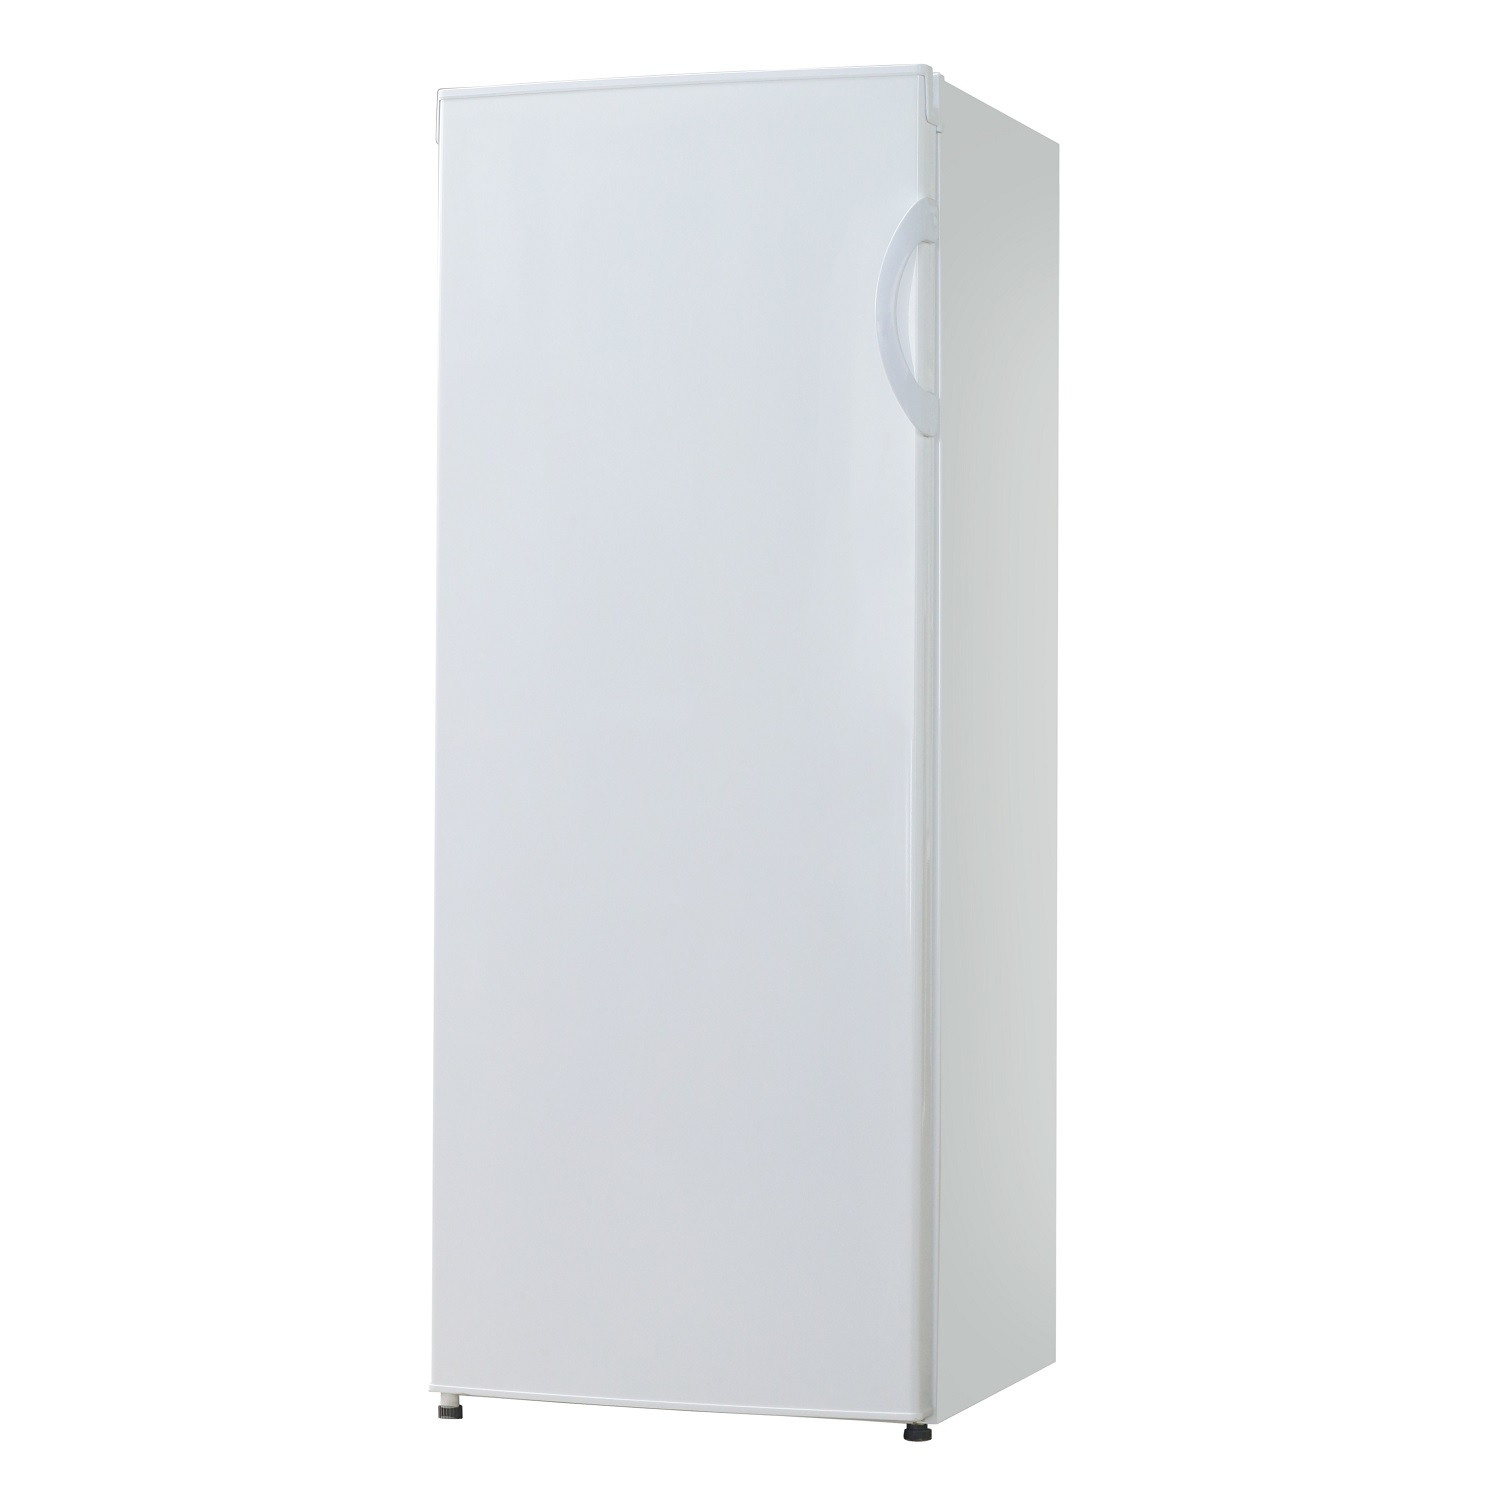 Midea Upright Freezer MF172W